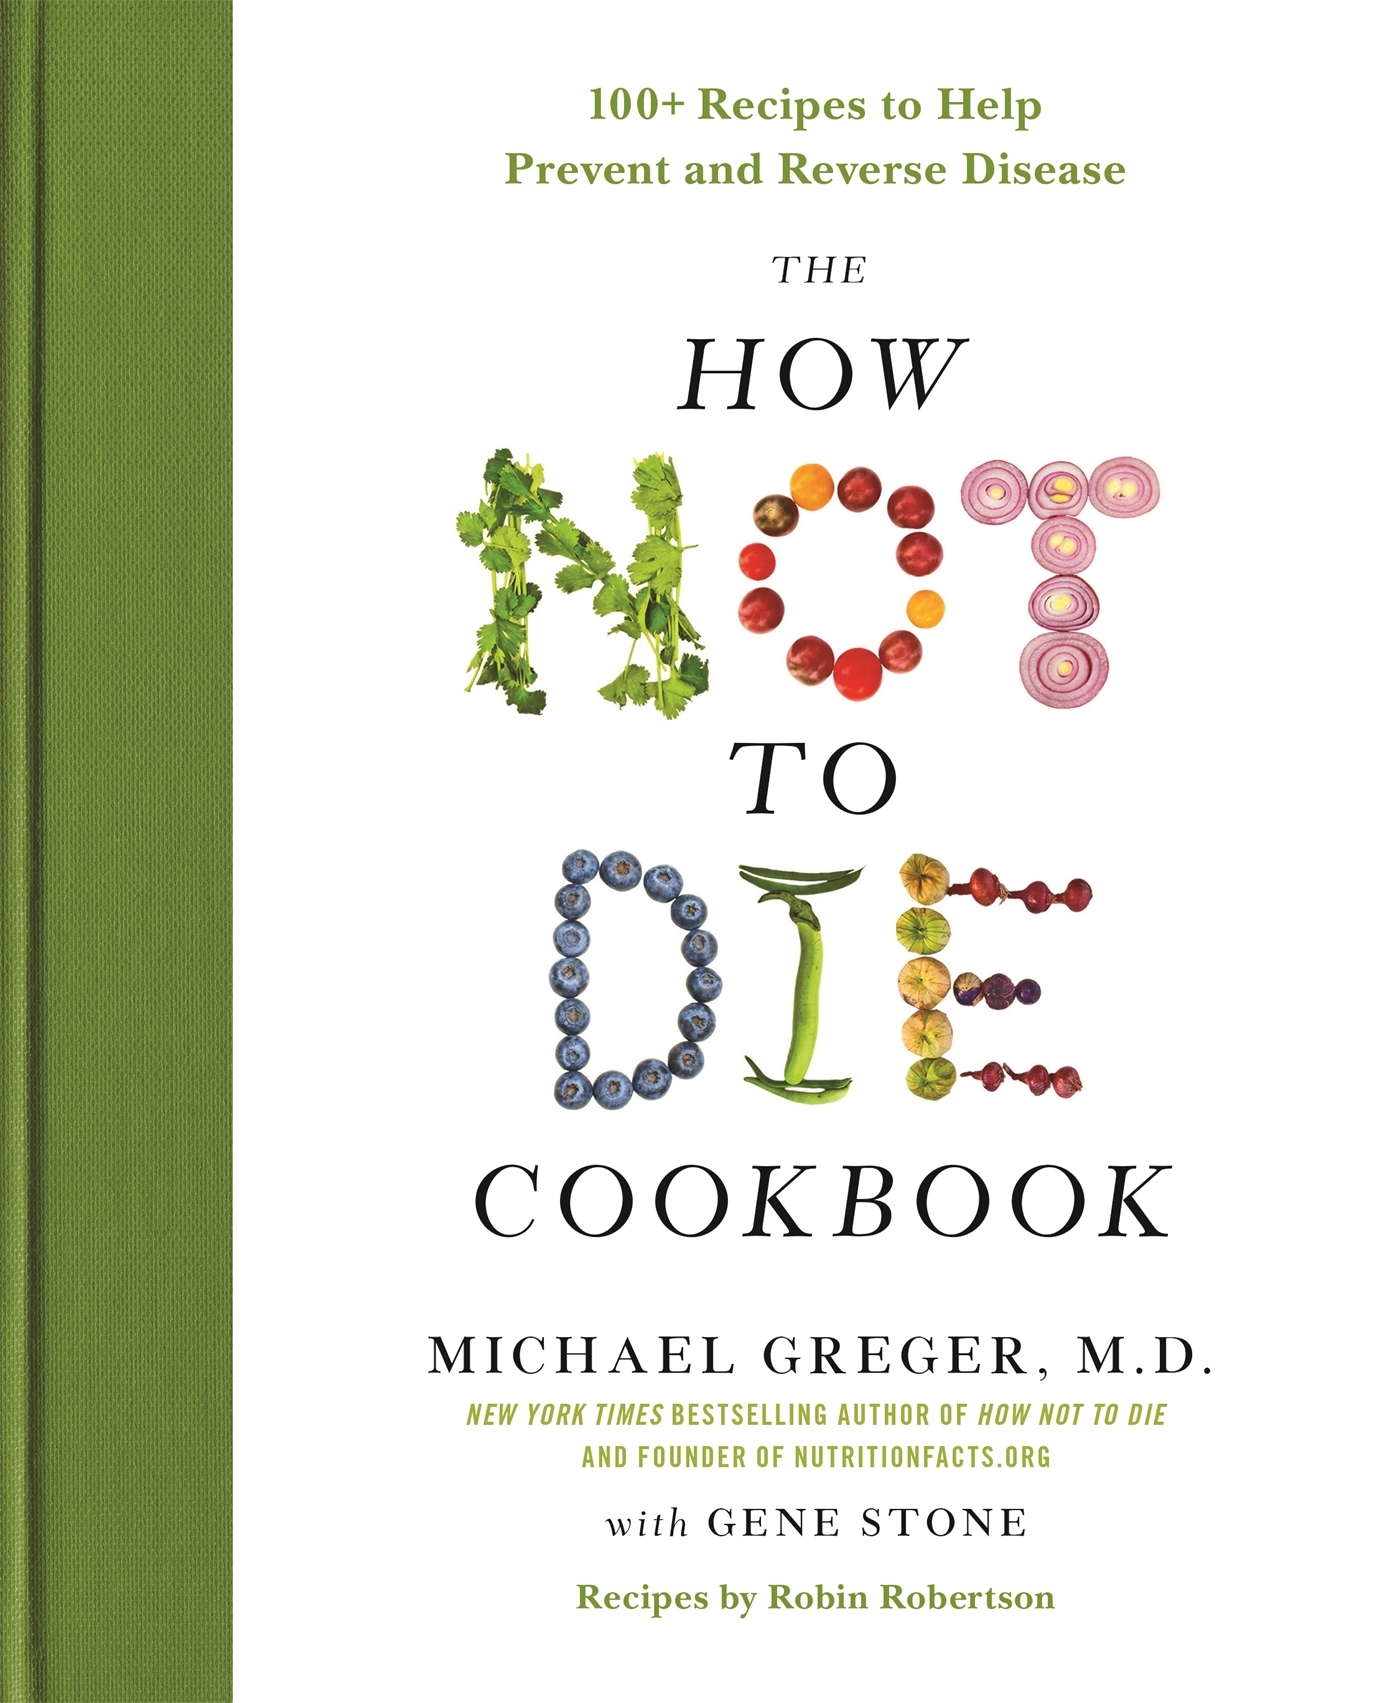 The how not to die cookbook cover image